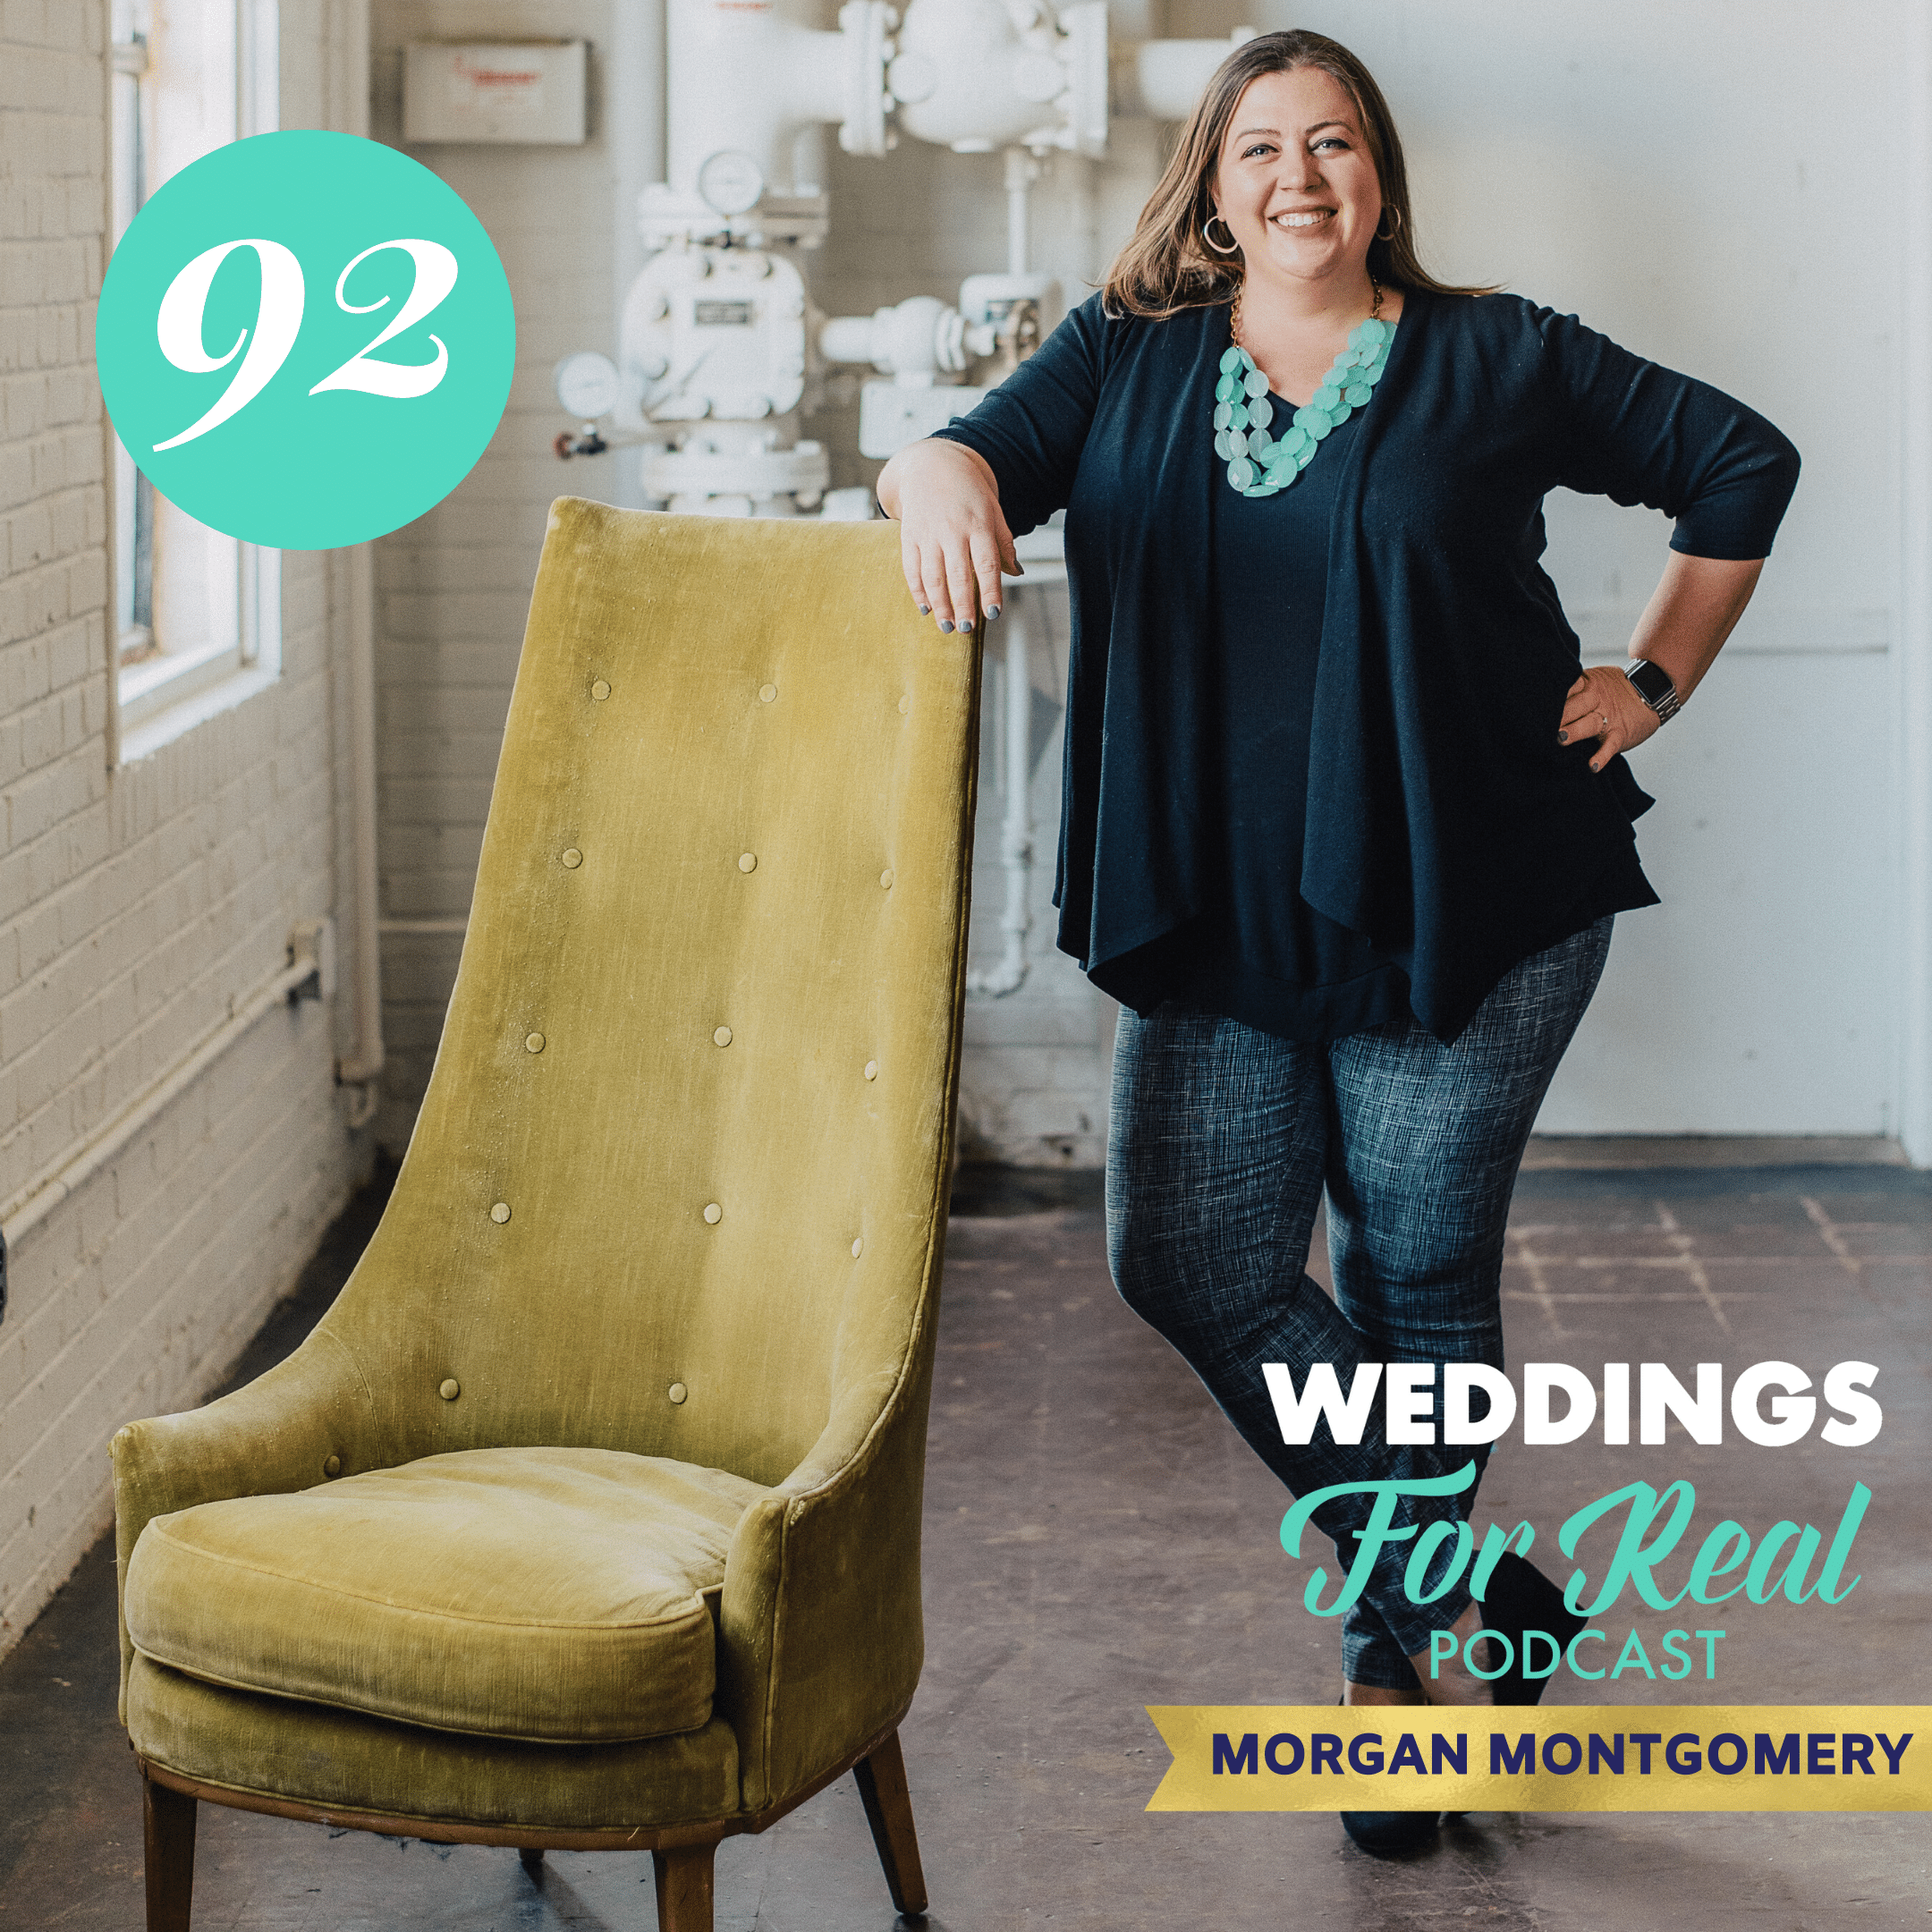 Morgan Montgomery on Weddings for Real Podcast